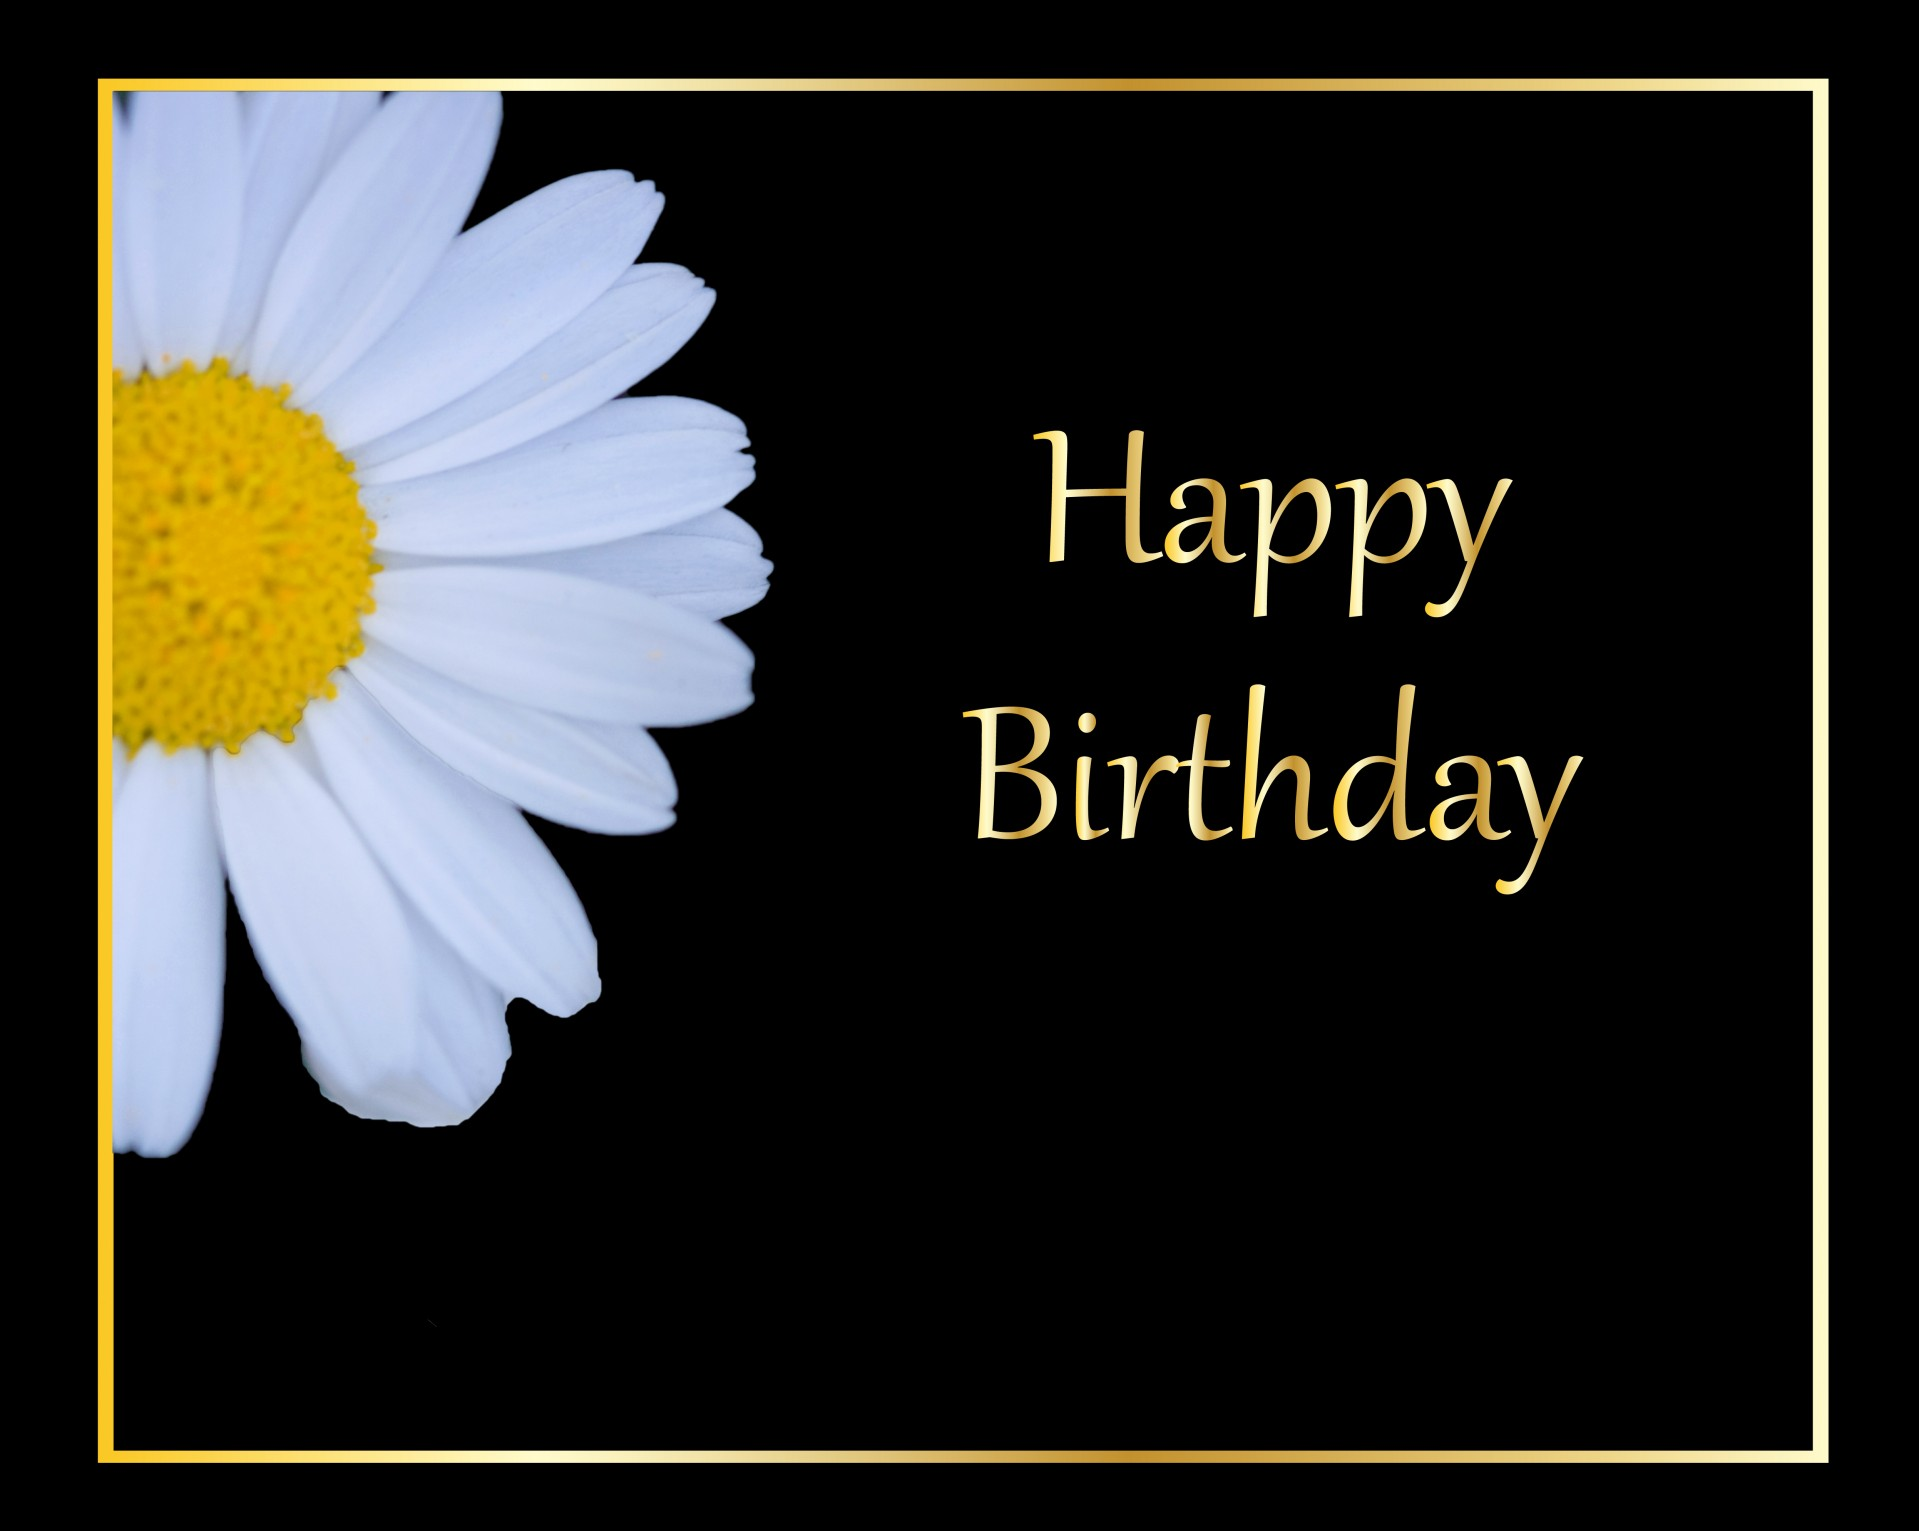 Daisy Flower Birthday Card Free Stock Photo Public